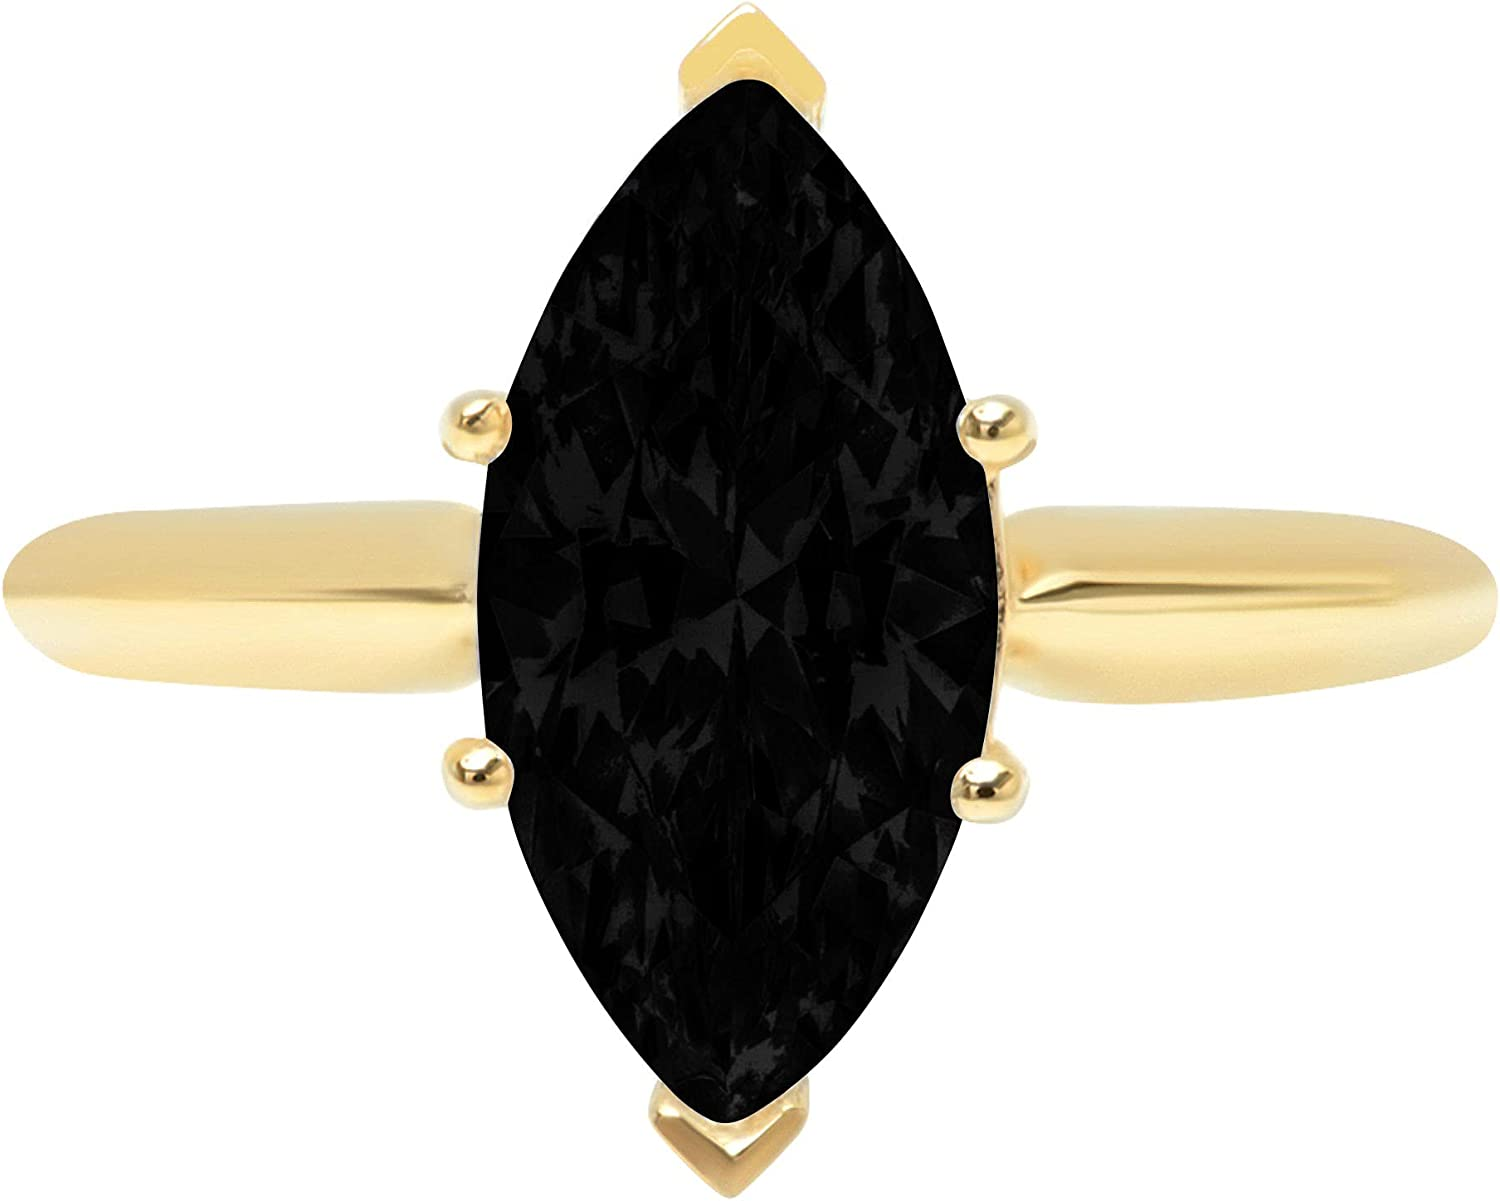 Clara Pucci 2.50 ct Brilliant Marquise Cut Solitaire Natural Black Onyx Gem 6-Prong Engagement Wedding Bridal Promise Anniversary Ring Solid 18K Yellow Gold for Women